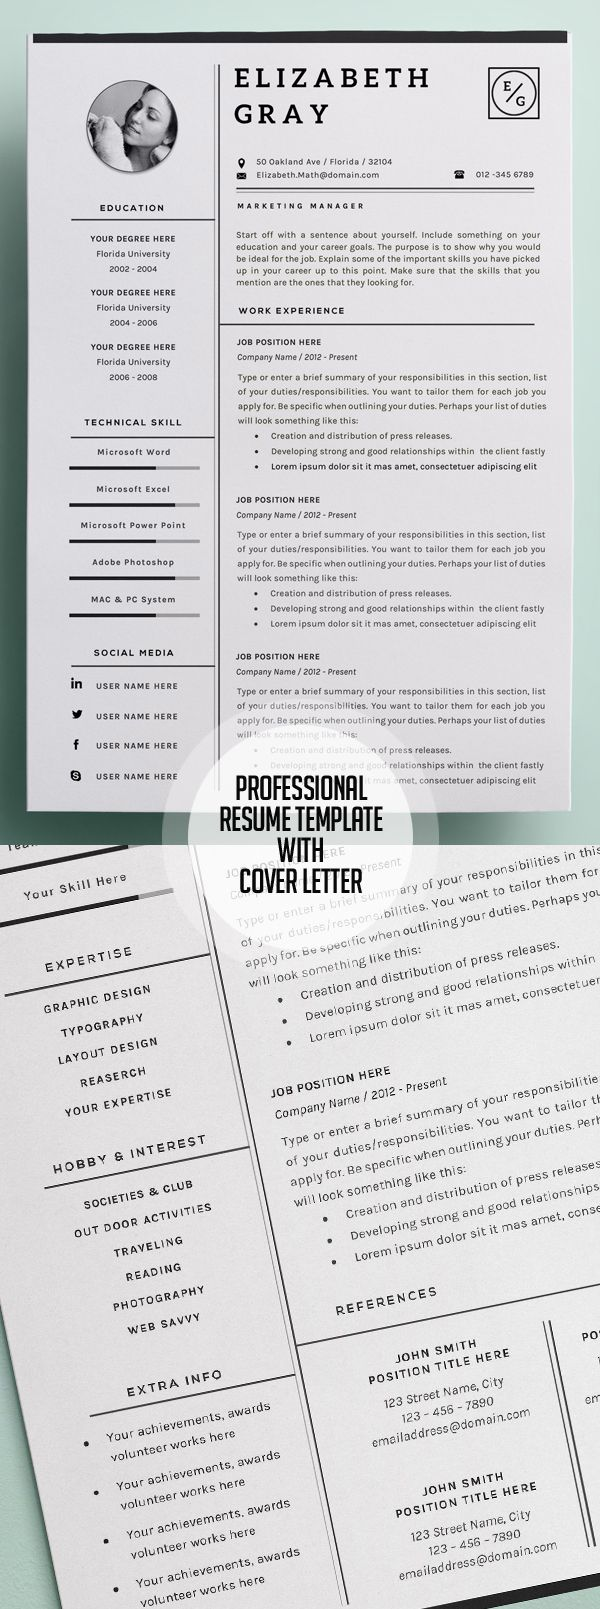 Picnictoimpeachus  Winning  Resume Ideas On Pinterest  Resume Resume Templates And  With Engaging Professional And Modern Resume Template With Page Cover Cvtemplate With Astounding Help Desk Support Resume Also Government Resumes In Addition Successful Resume Examples And Great Examples Of Resumes As Well As Skills For Nursing Resume Additionally Compliance Analyst Resume From Pinterestcom With Picnictoimpeachus  Engaging  Resume Ideas On Pinterest  Resume Resume Templates And  With Astounding Professional And Modern Resume Template With Page Cover Cvtemplate And Winning Help Desk Support Resume Also Government Resumes In Addition Successful Resume Examples From Pinterestcom